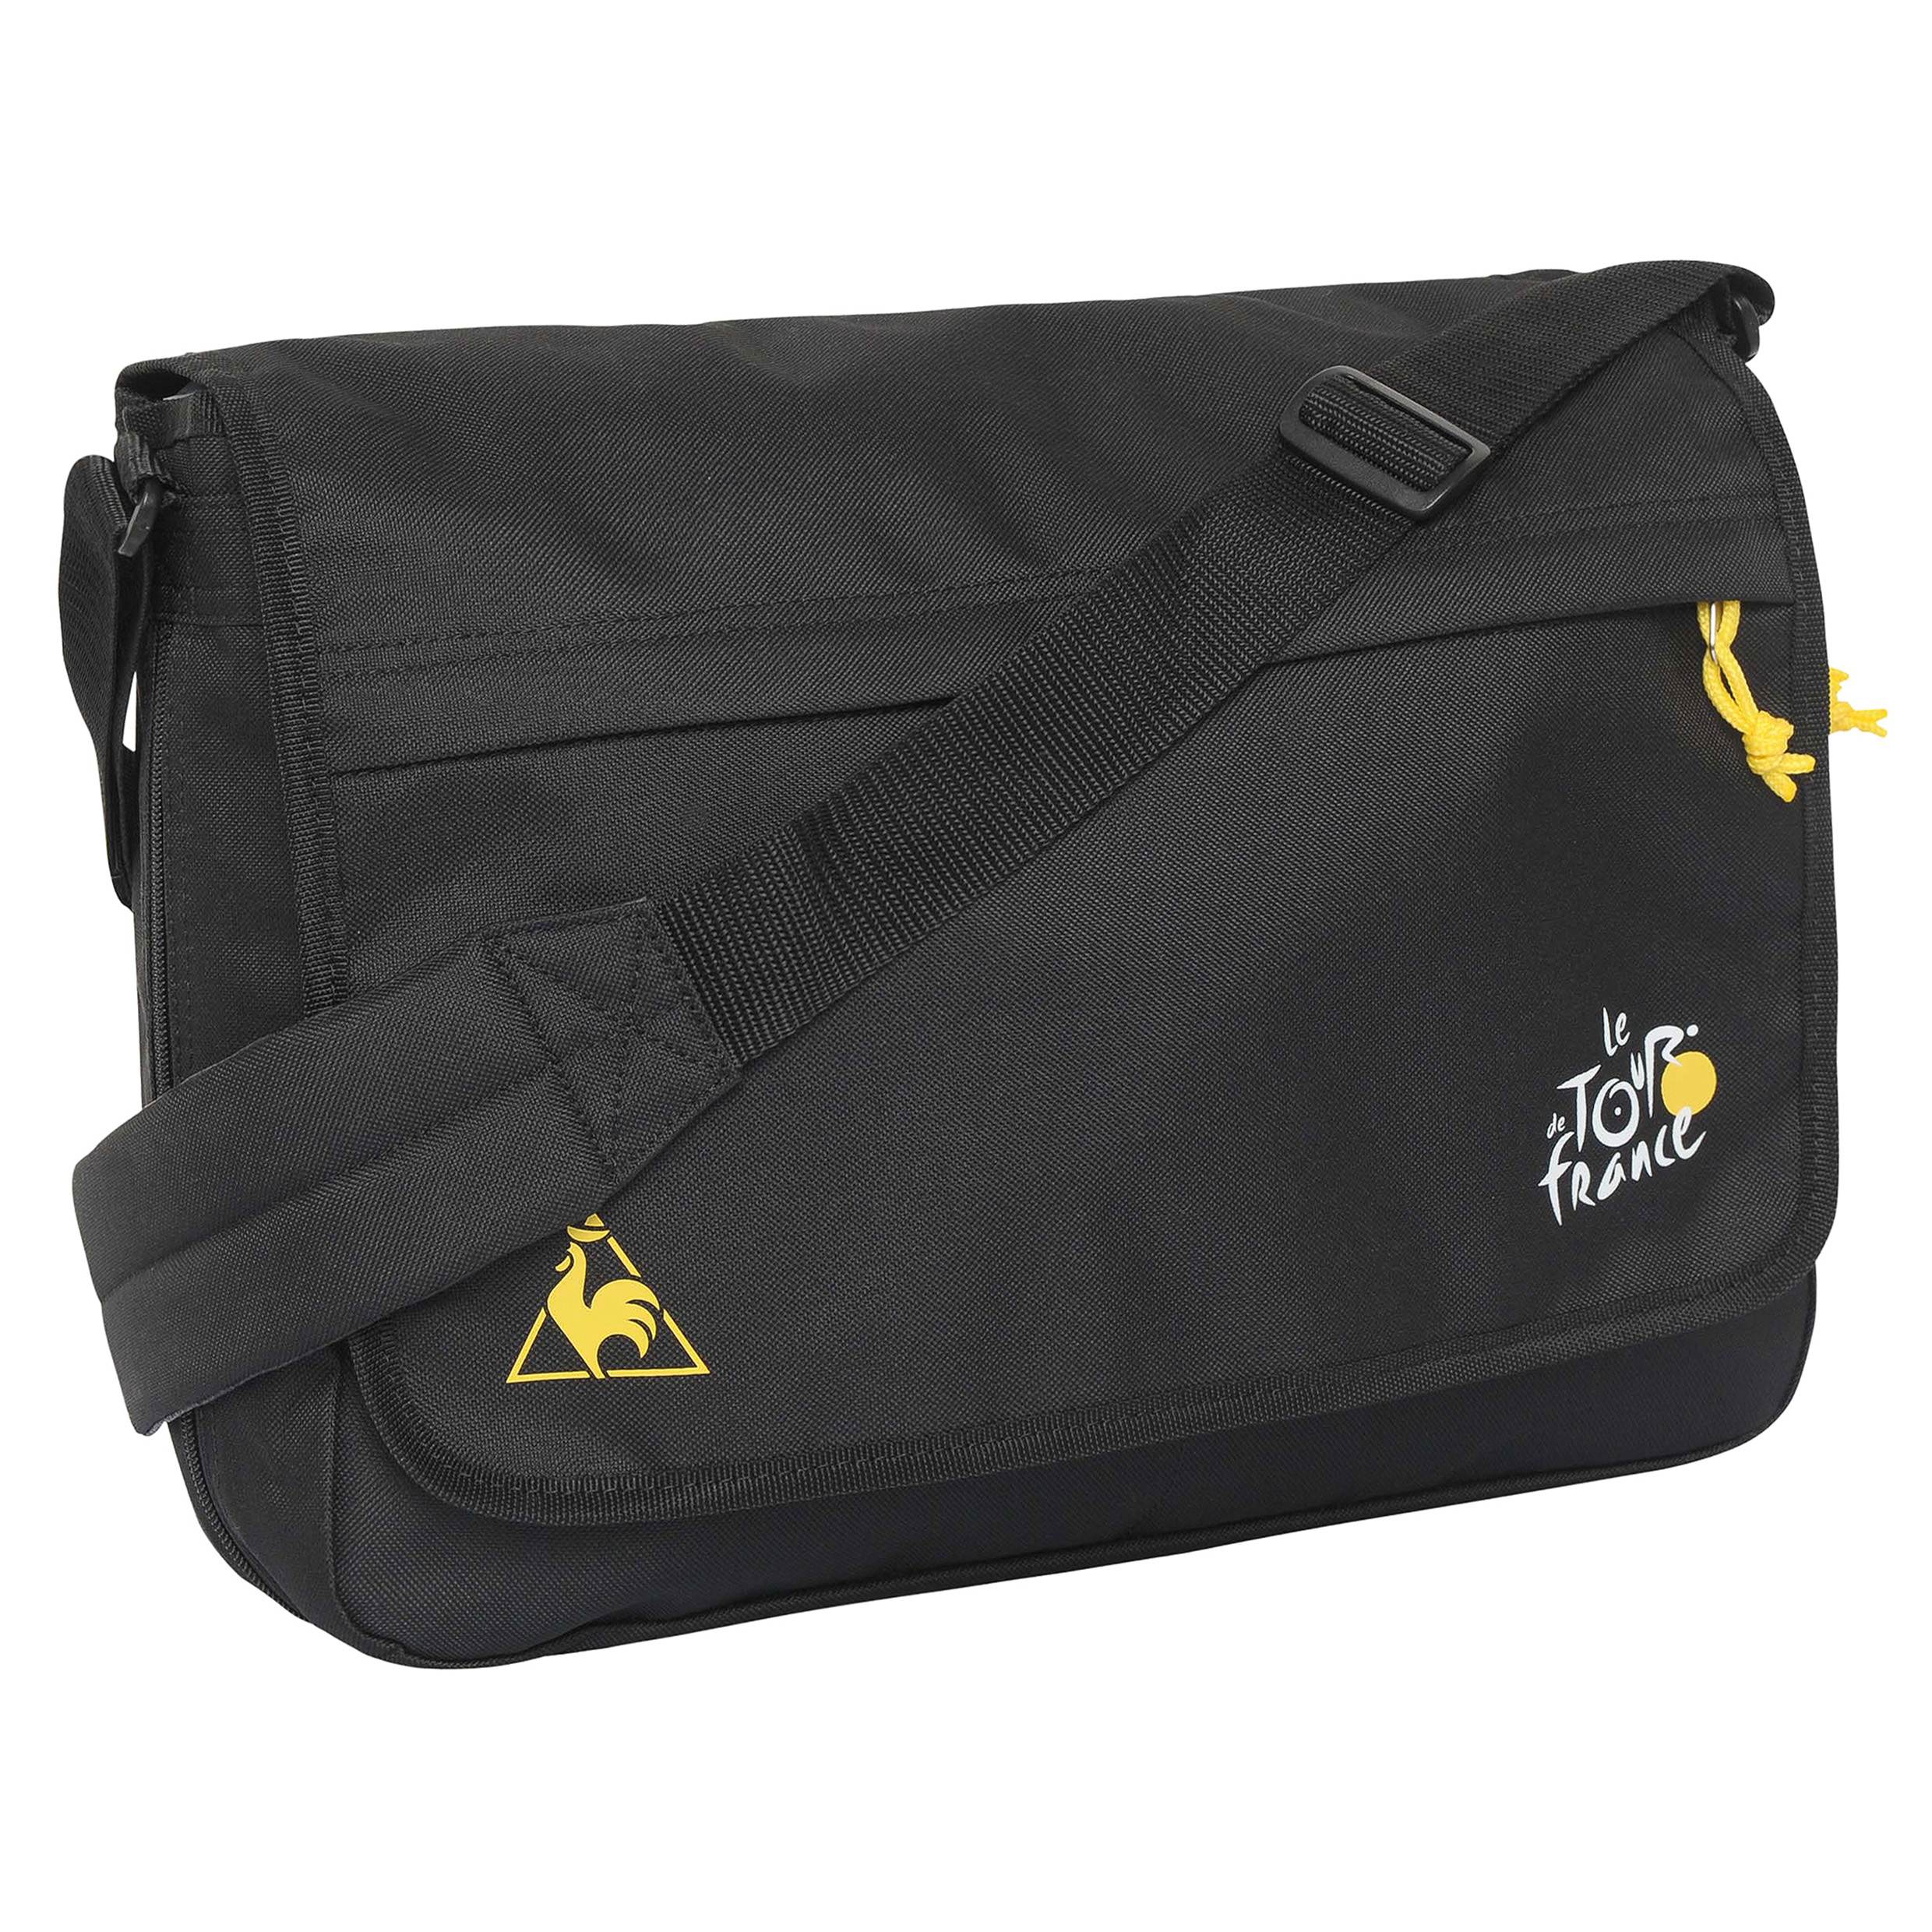 Le Tour de France Le Coq Sportif Messenger Bag - Black